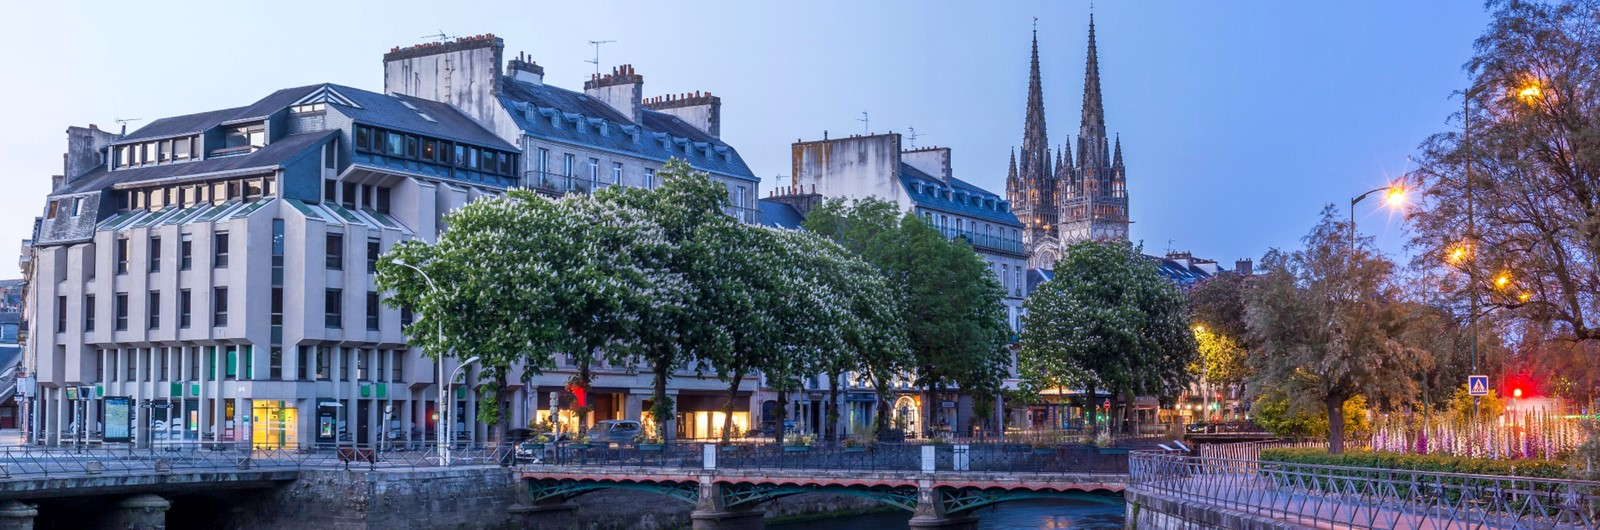 quimper city header